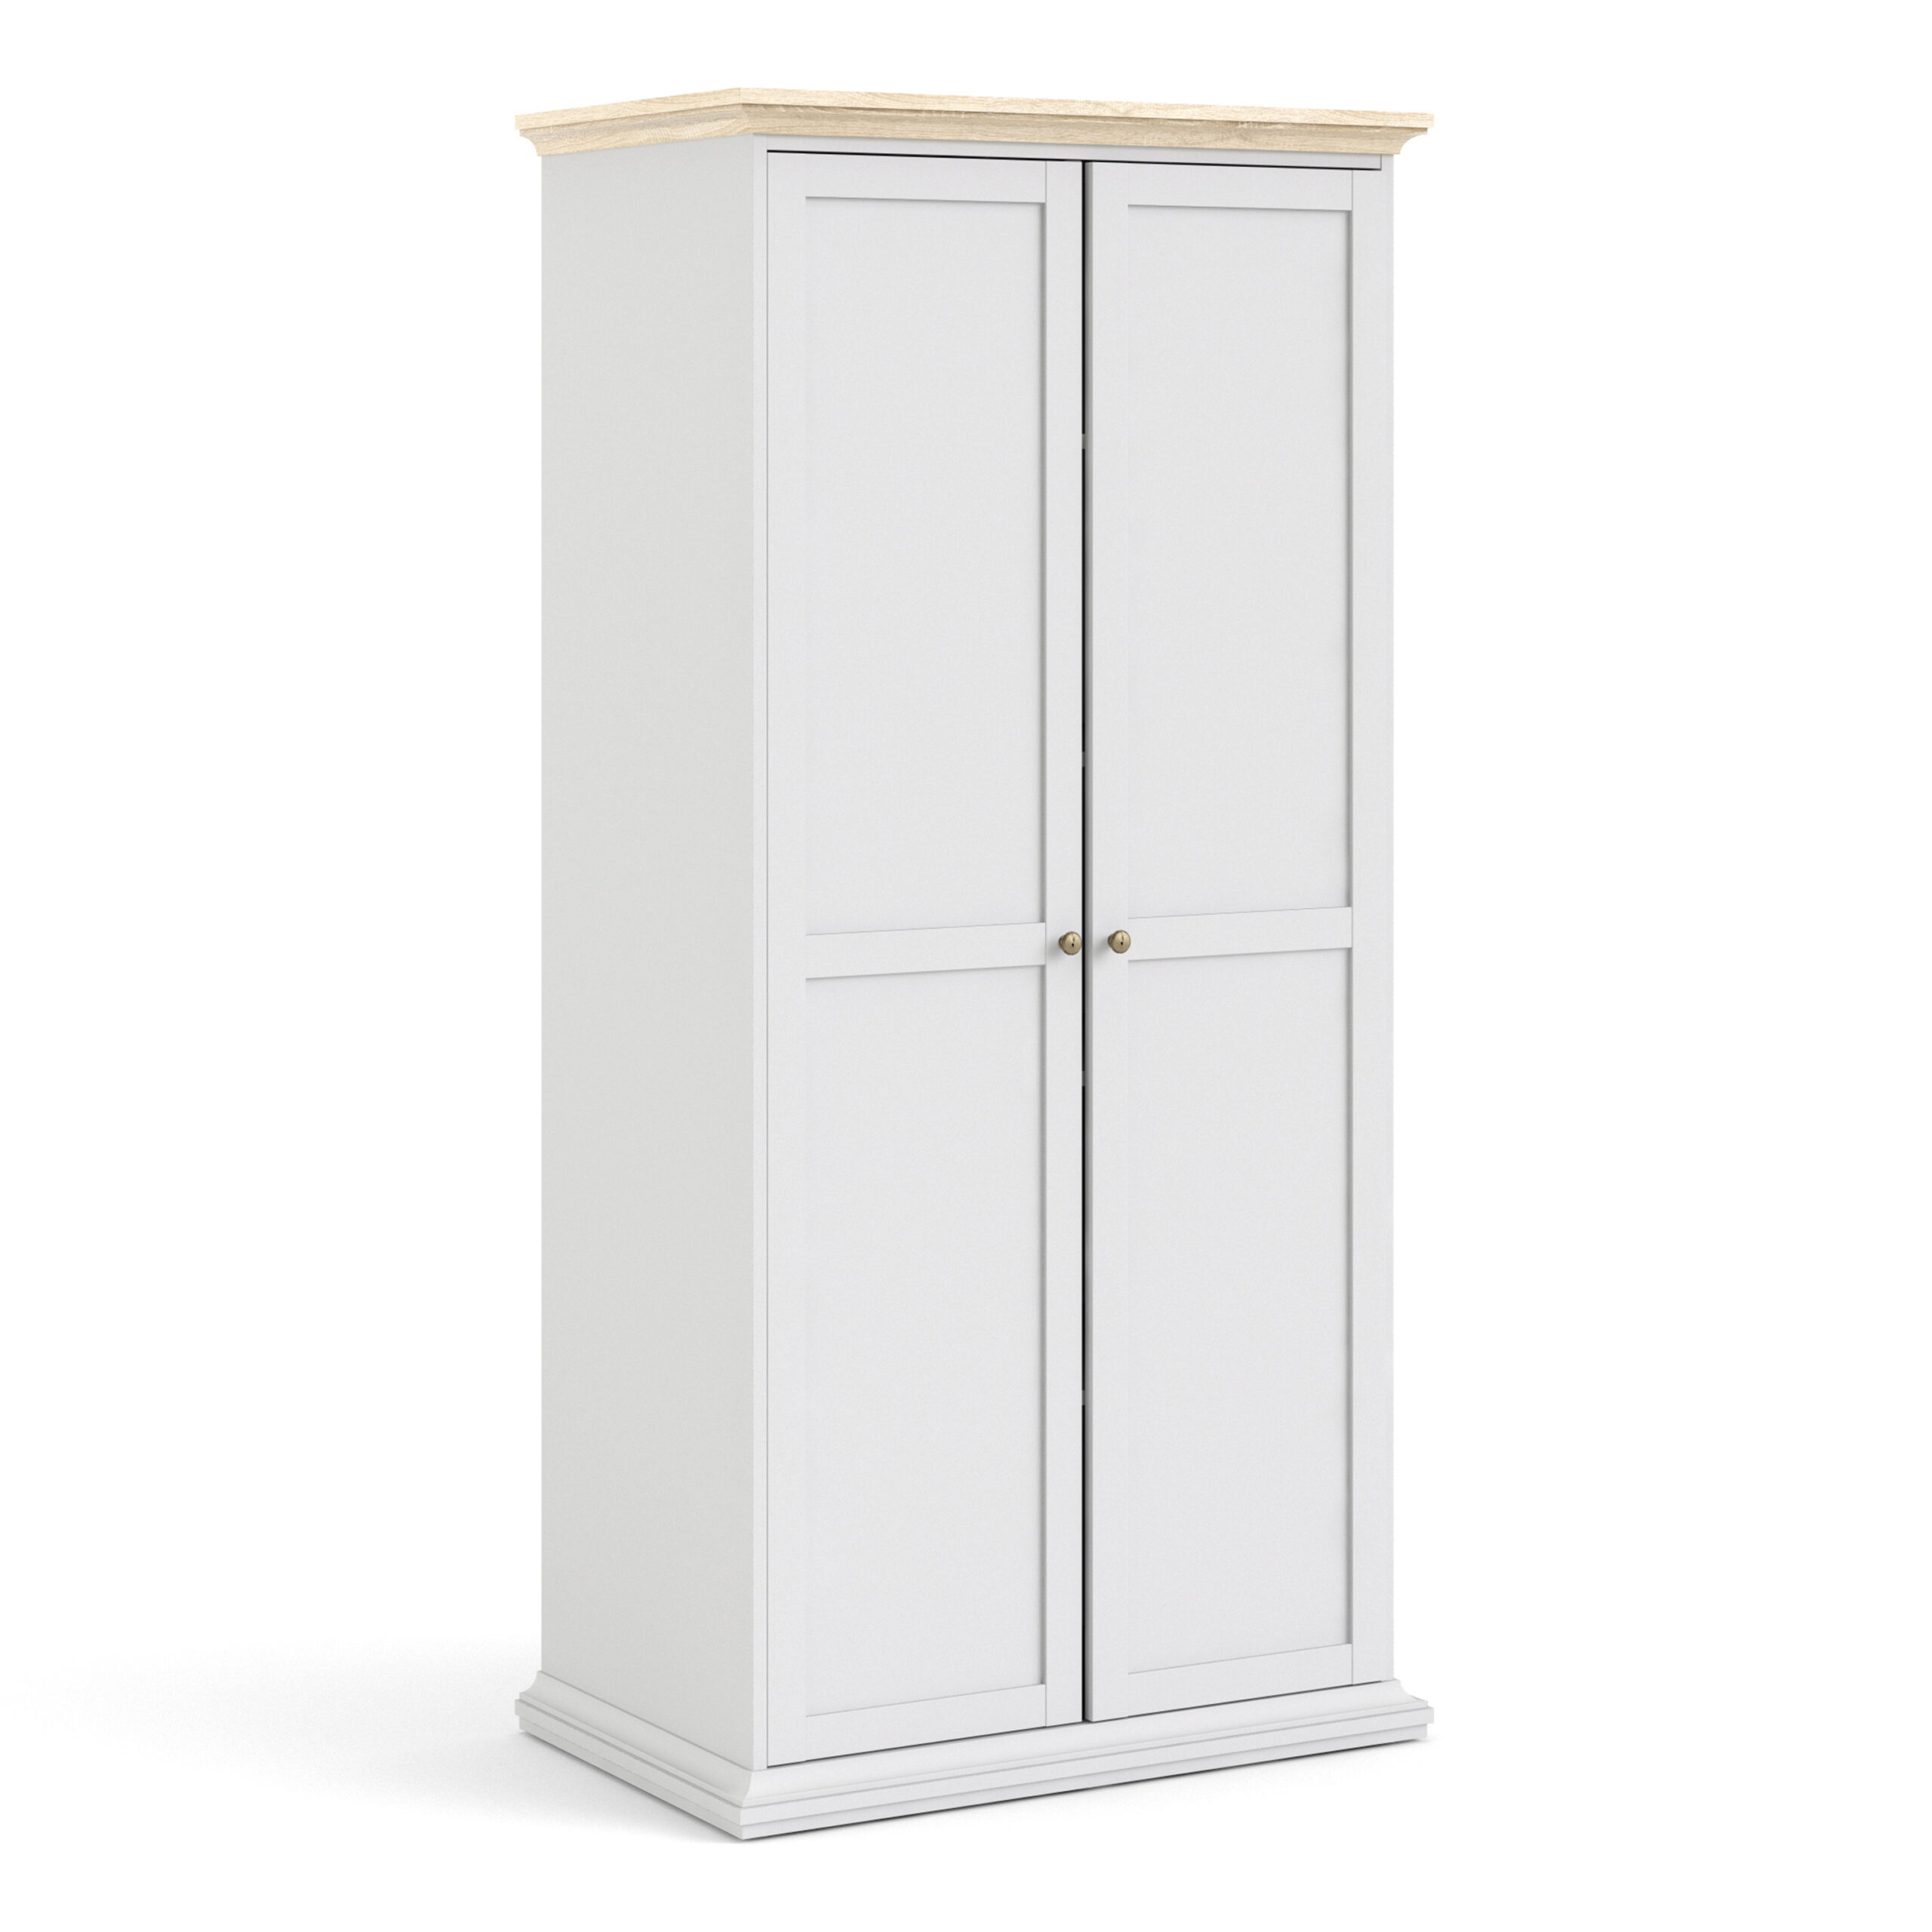 Party Wardrobe with 2 Doors in White and Oak